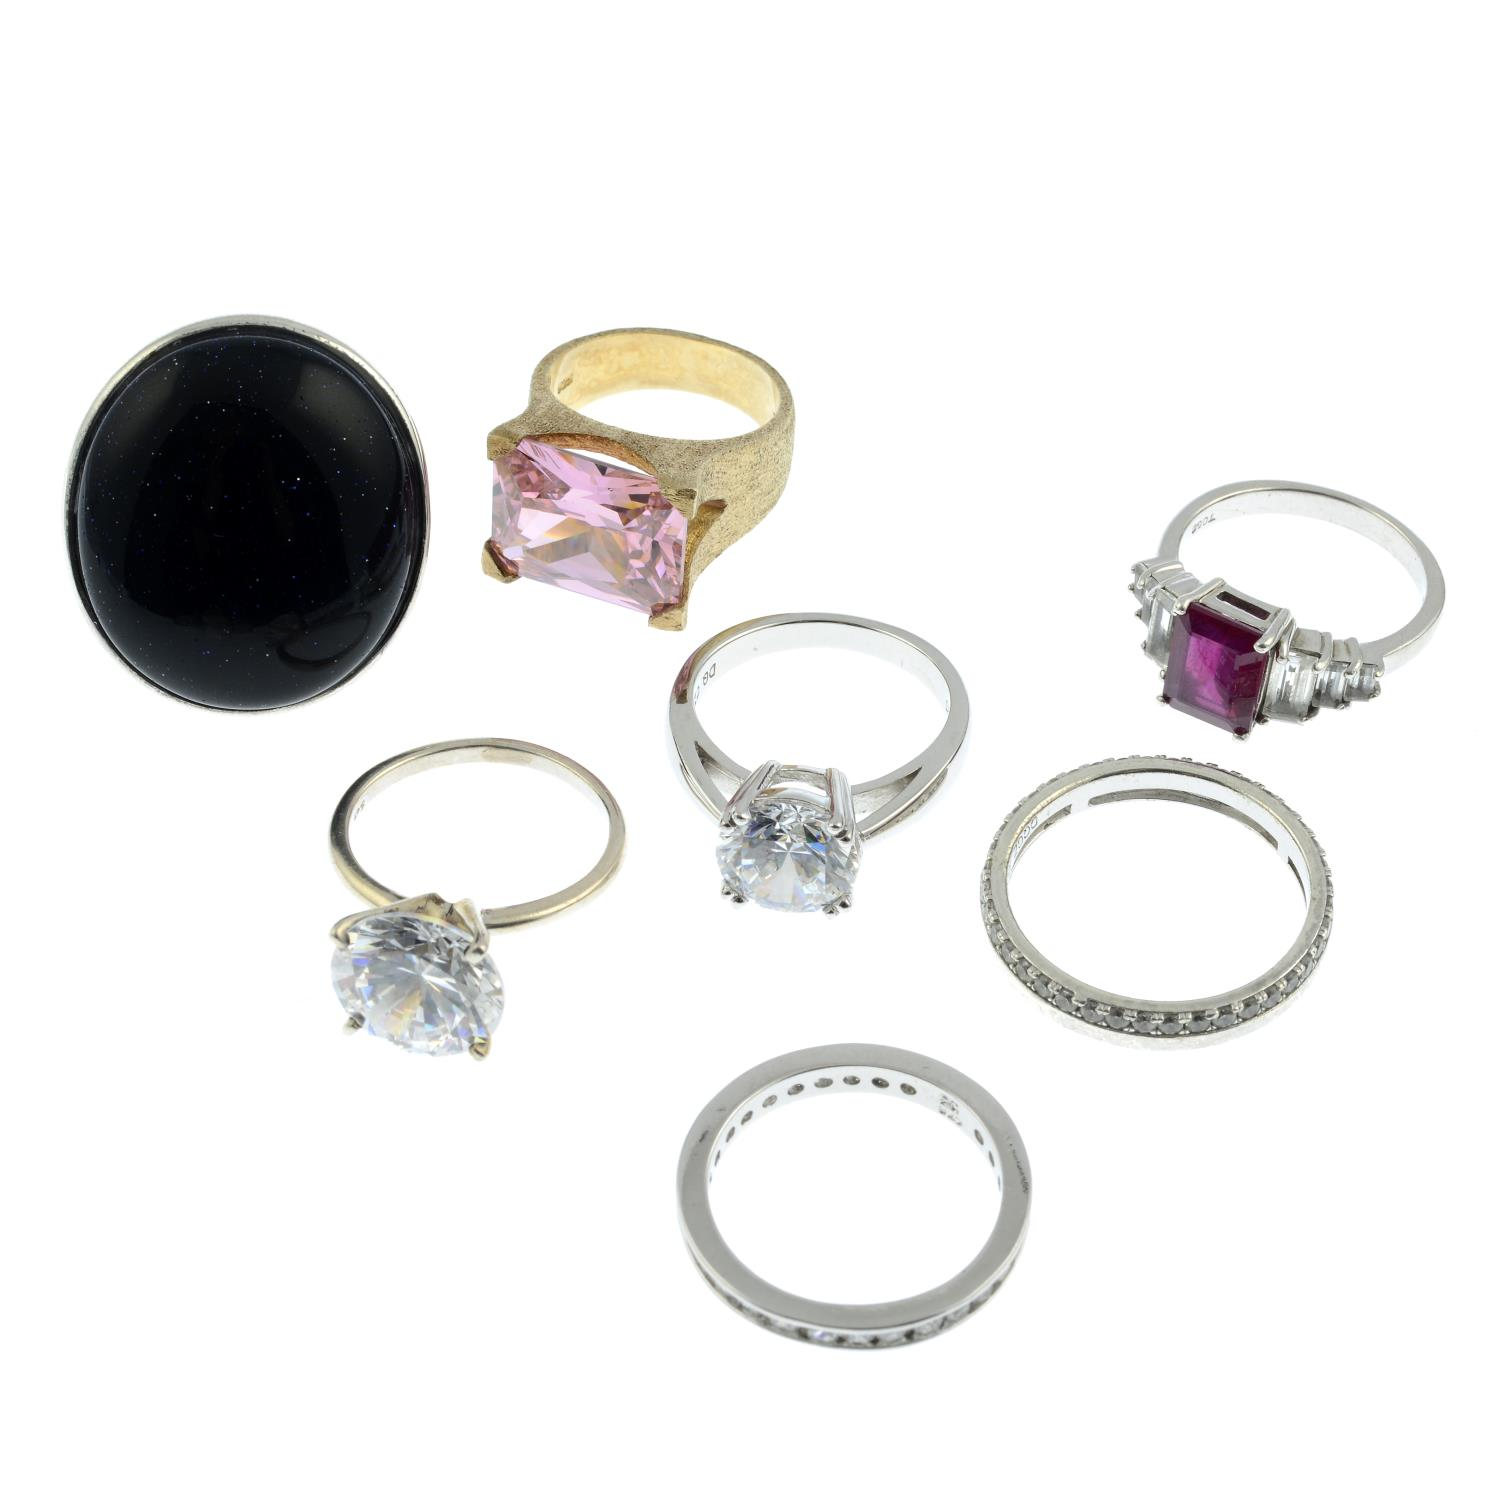 A selection of ten gem-set rings, to include a cubic zirconia eternity ring. - Image 2 of 2